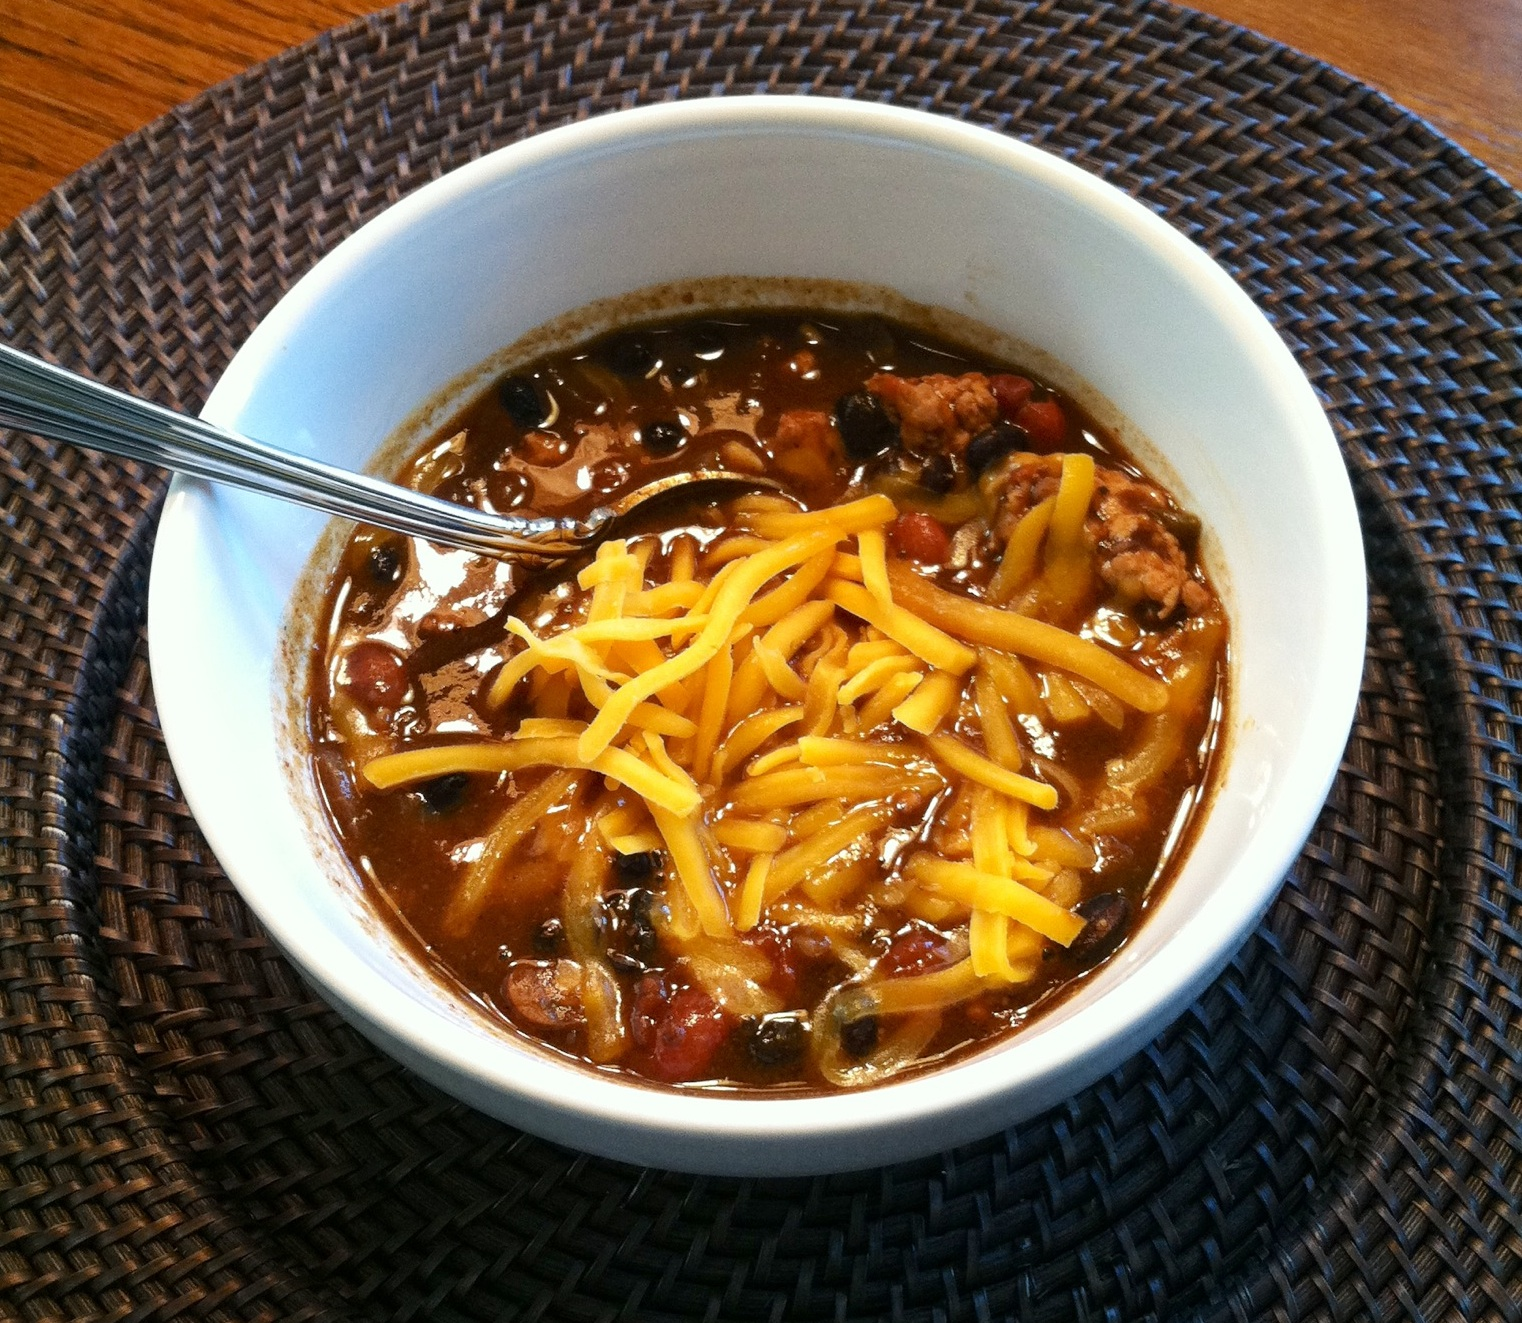 KATIE MADE IT: Home Cookin' Made Easier: Terrific Turkey Chili